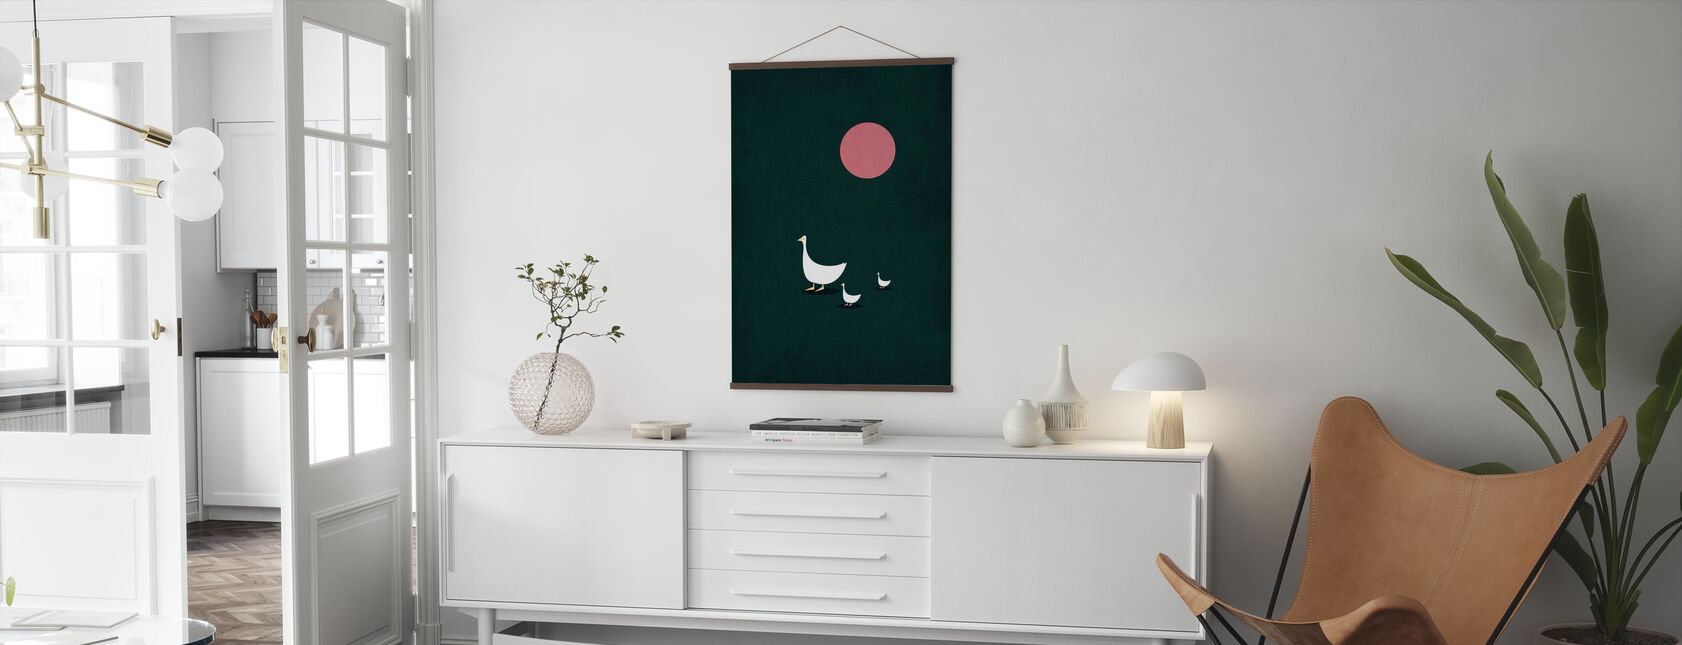 Sunny Side of Life - Poster - Living Room